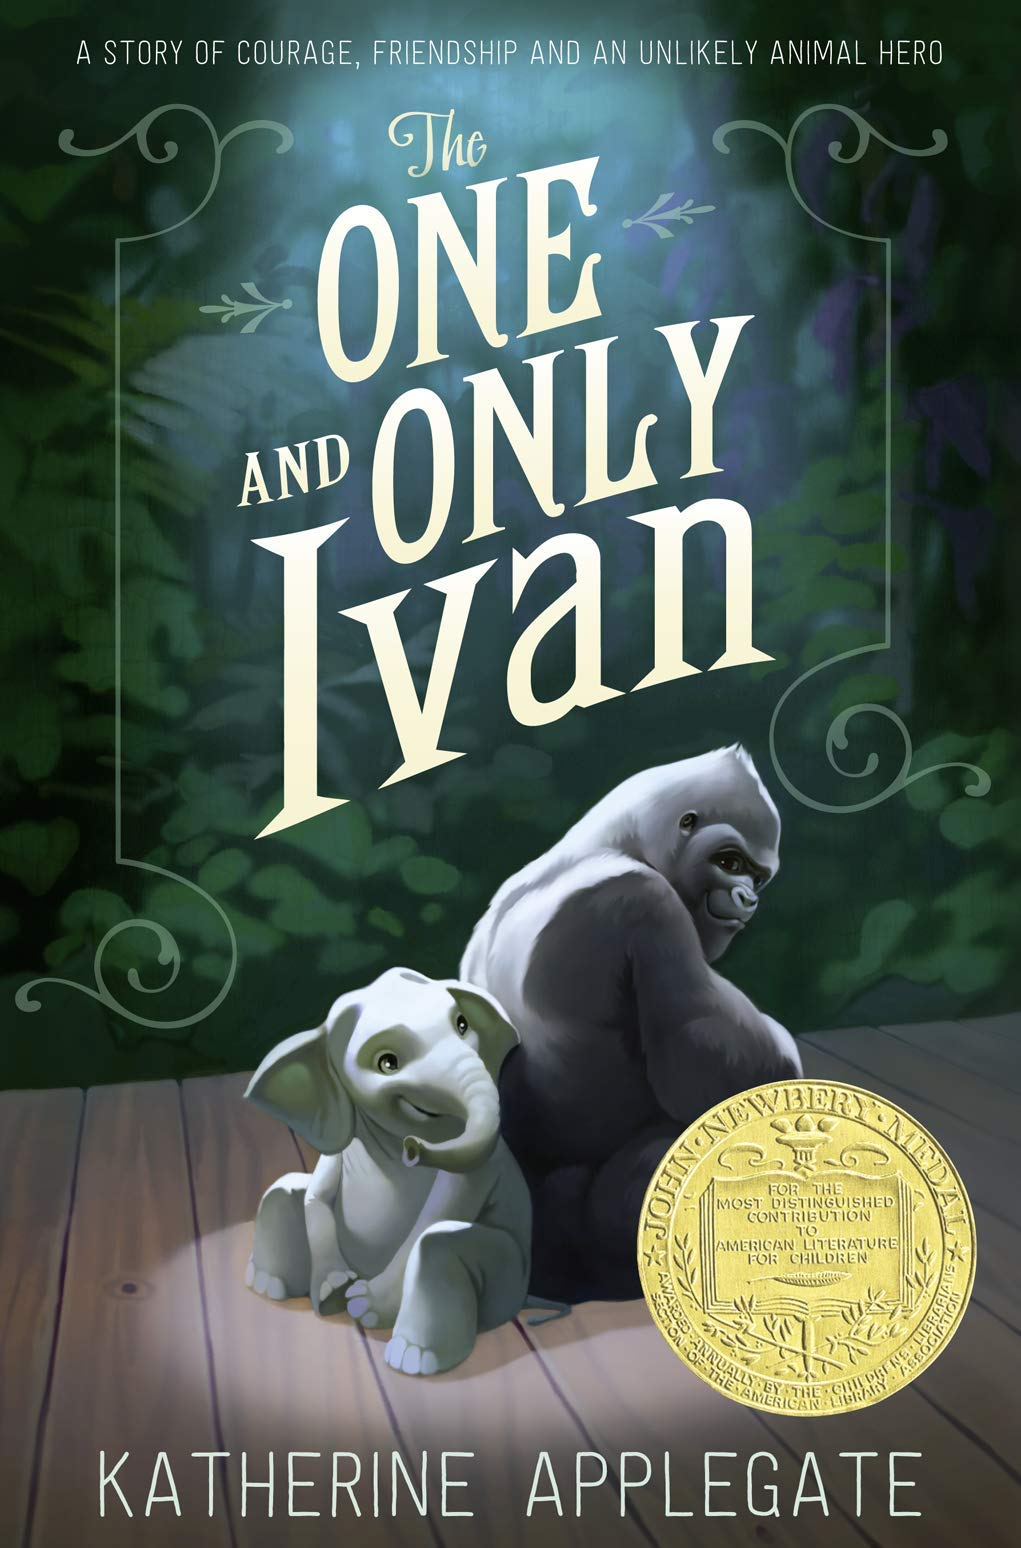 Buy The One and Only IVan Book Online at Low Prices in India | The One and Only IVan Reviews & Ratings - Amazon.in